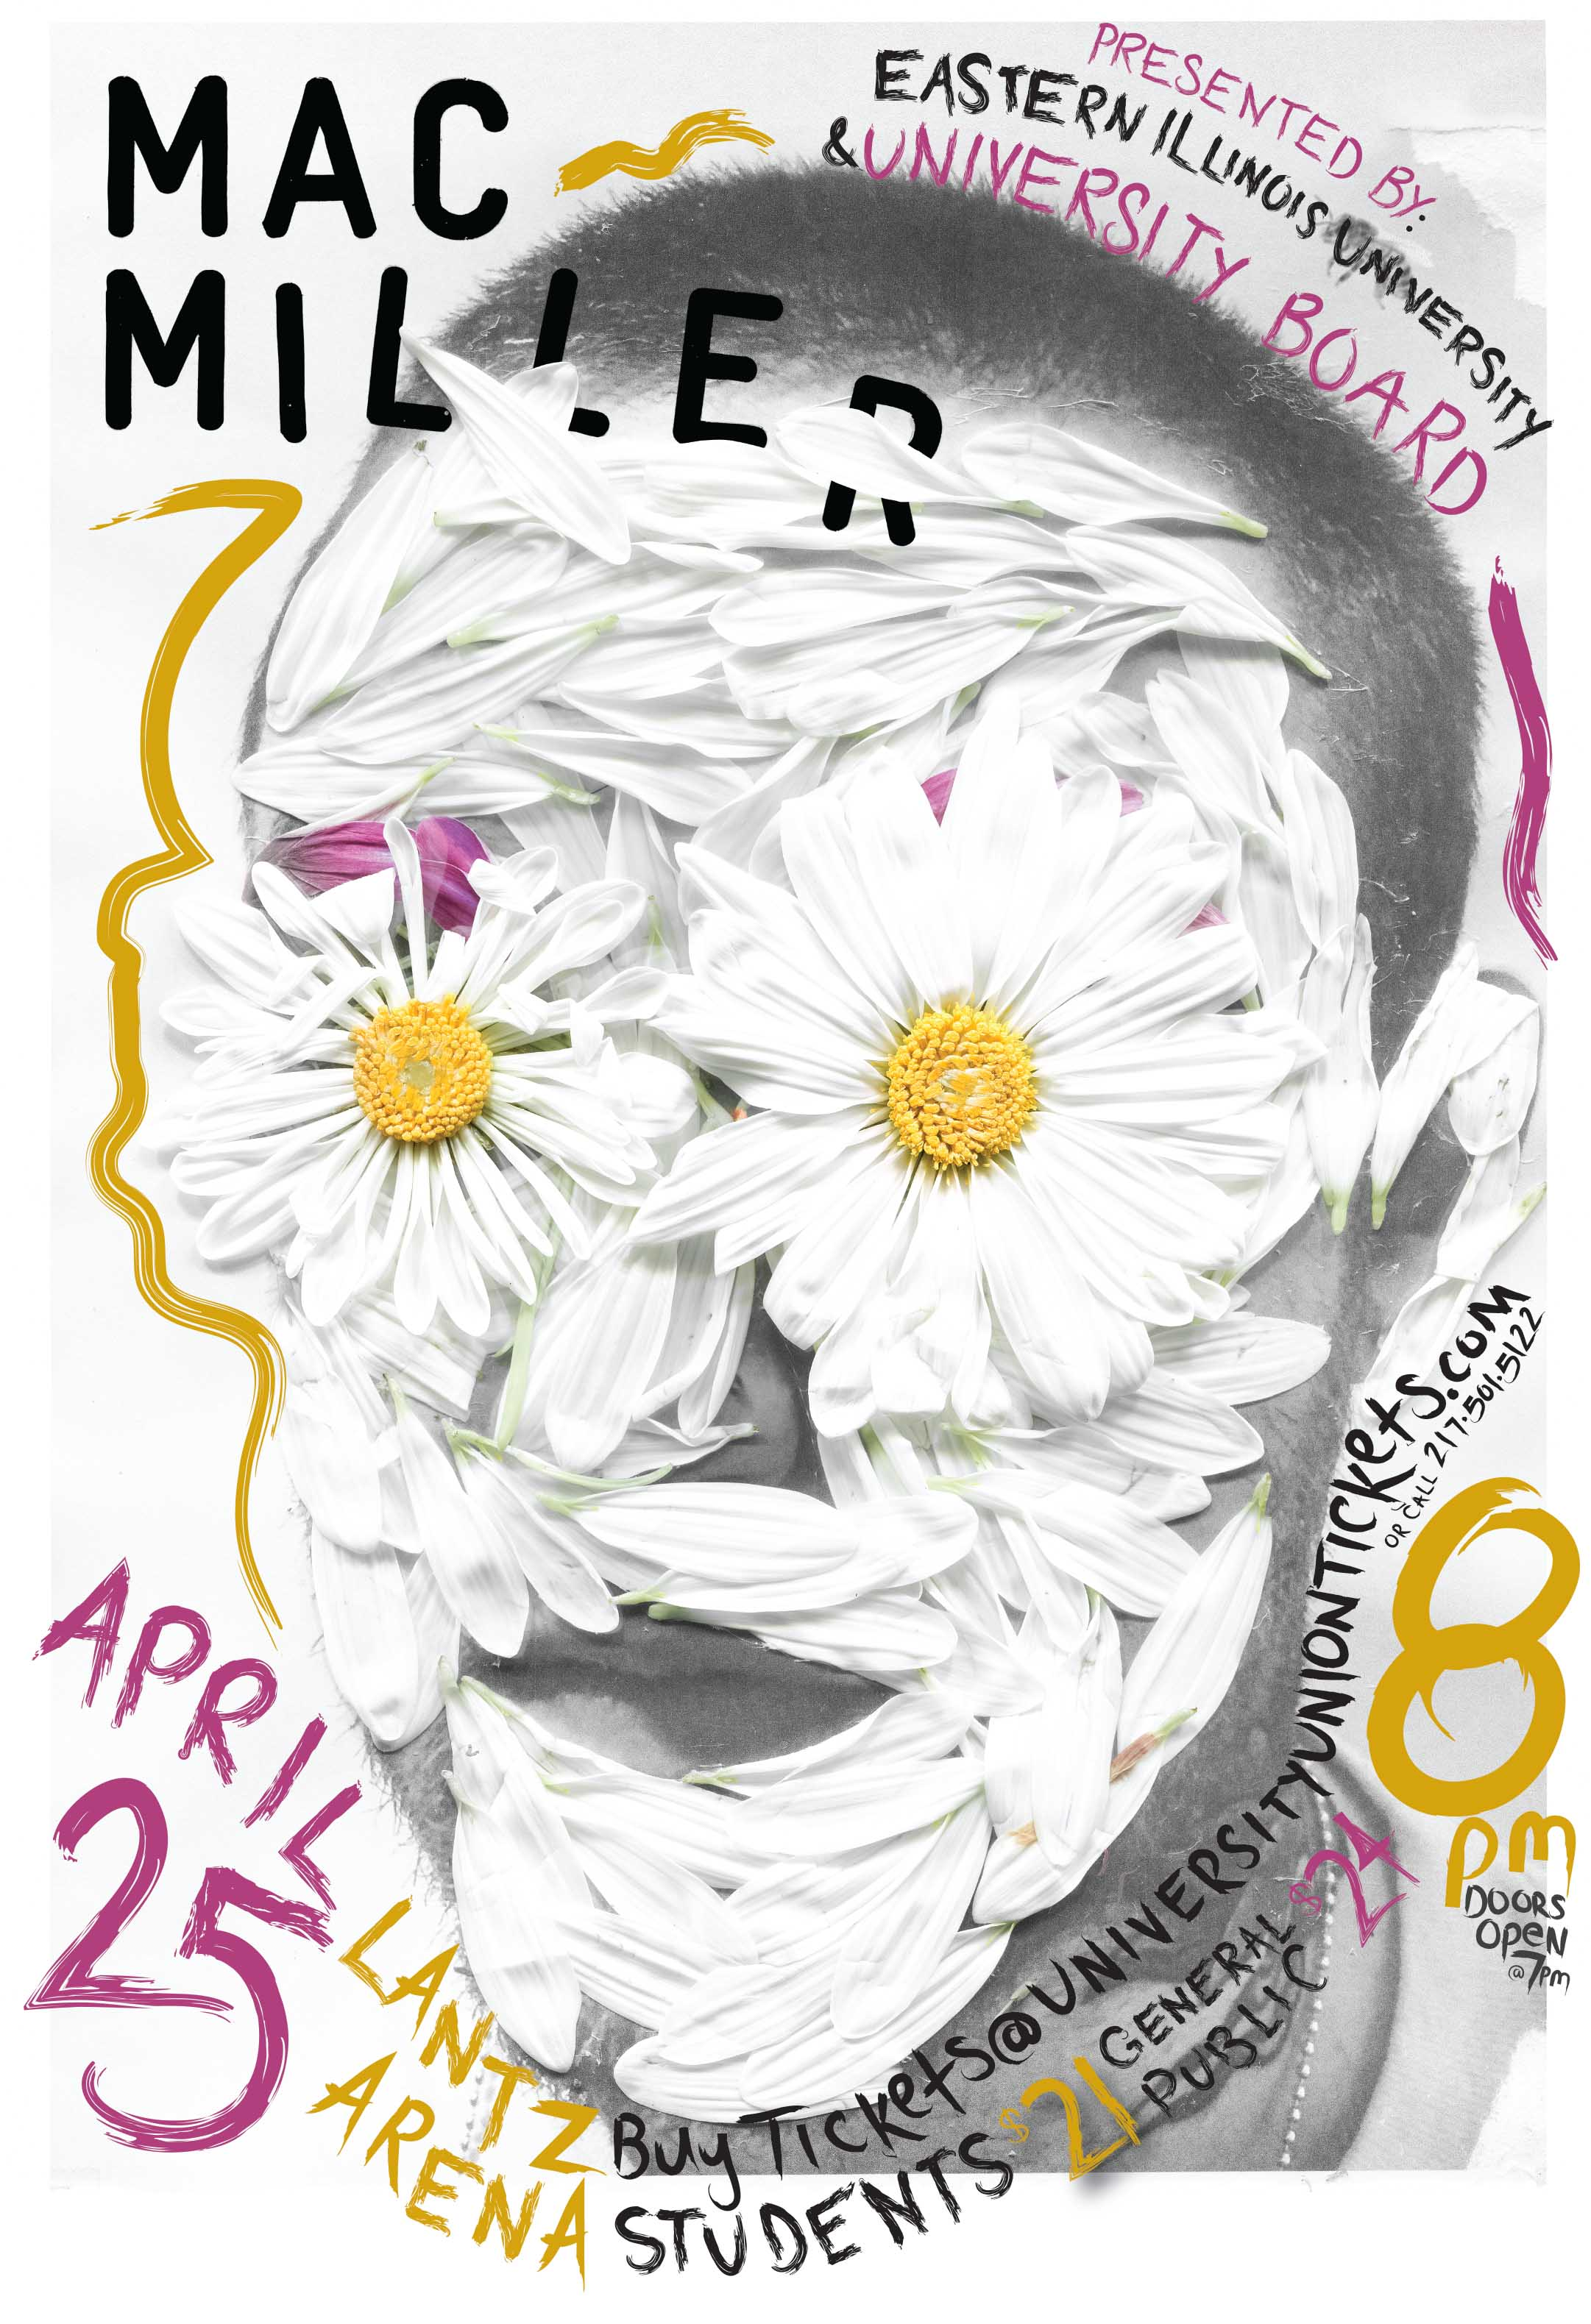 Poster design on mac - Concert Poster Design For Mac Miller At Eastern Illinois University The Image With The Flower